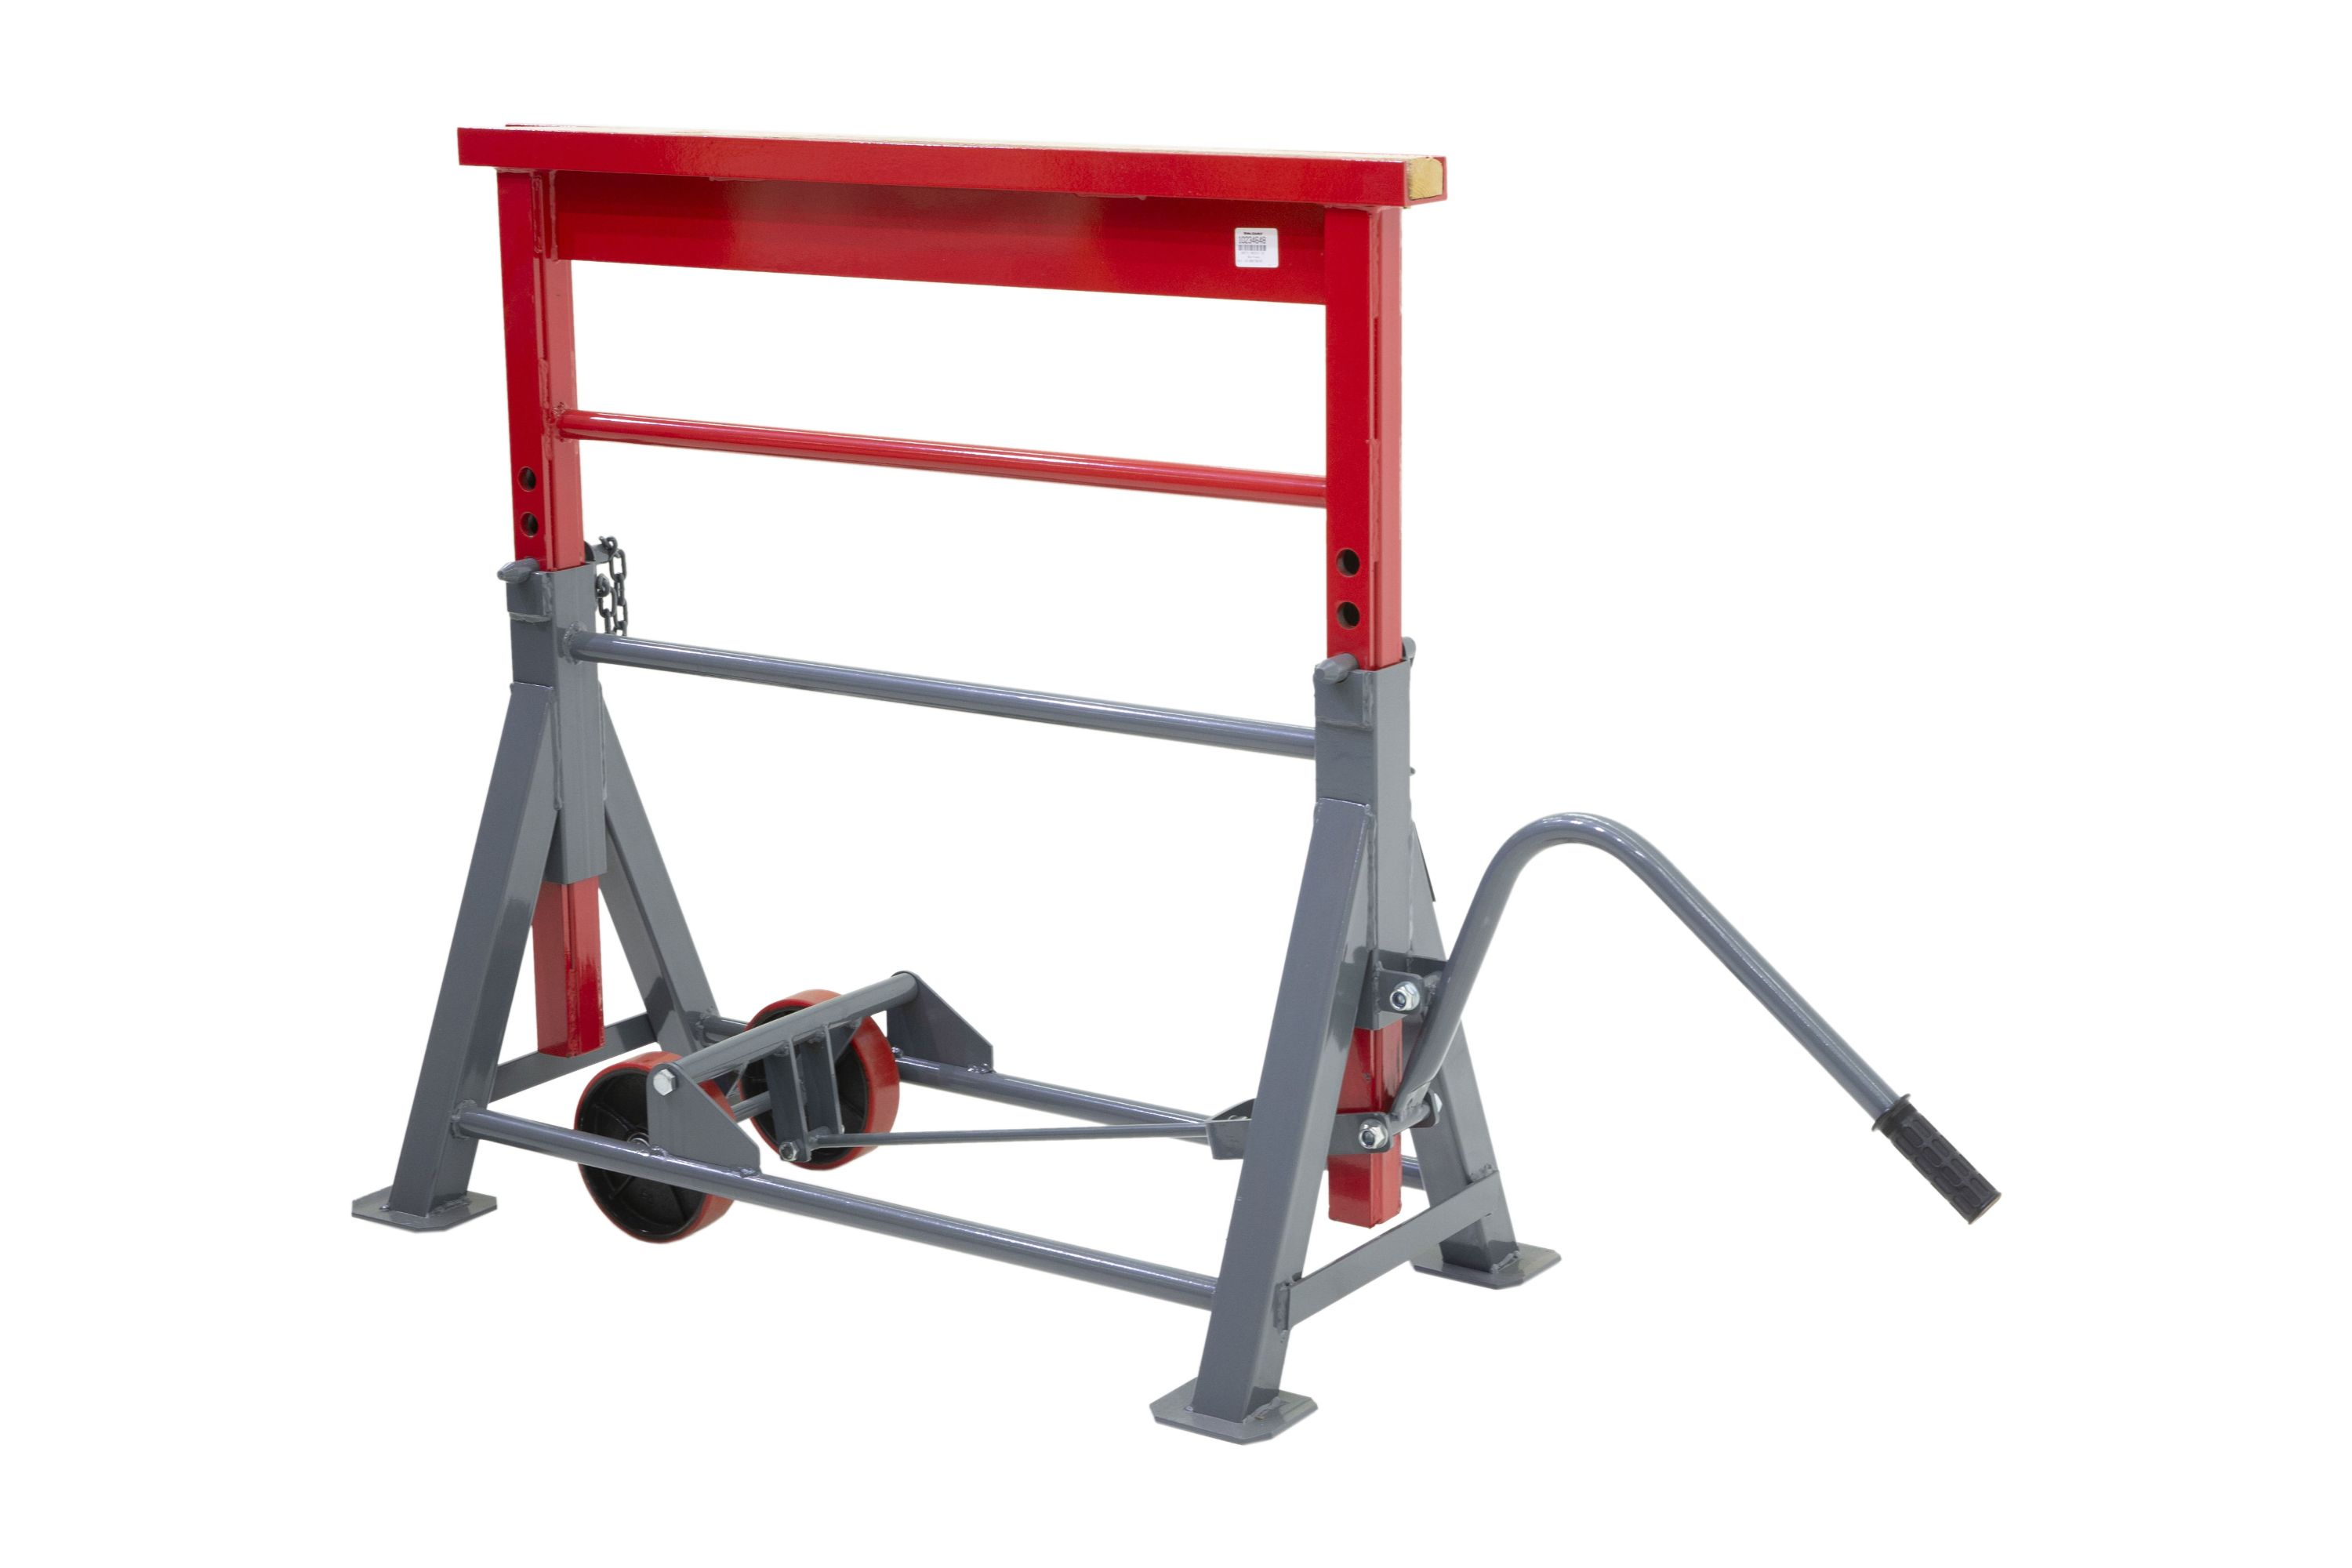 stacking-and-lifting/jacks-and-supports/trailer-safety-supports/